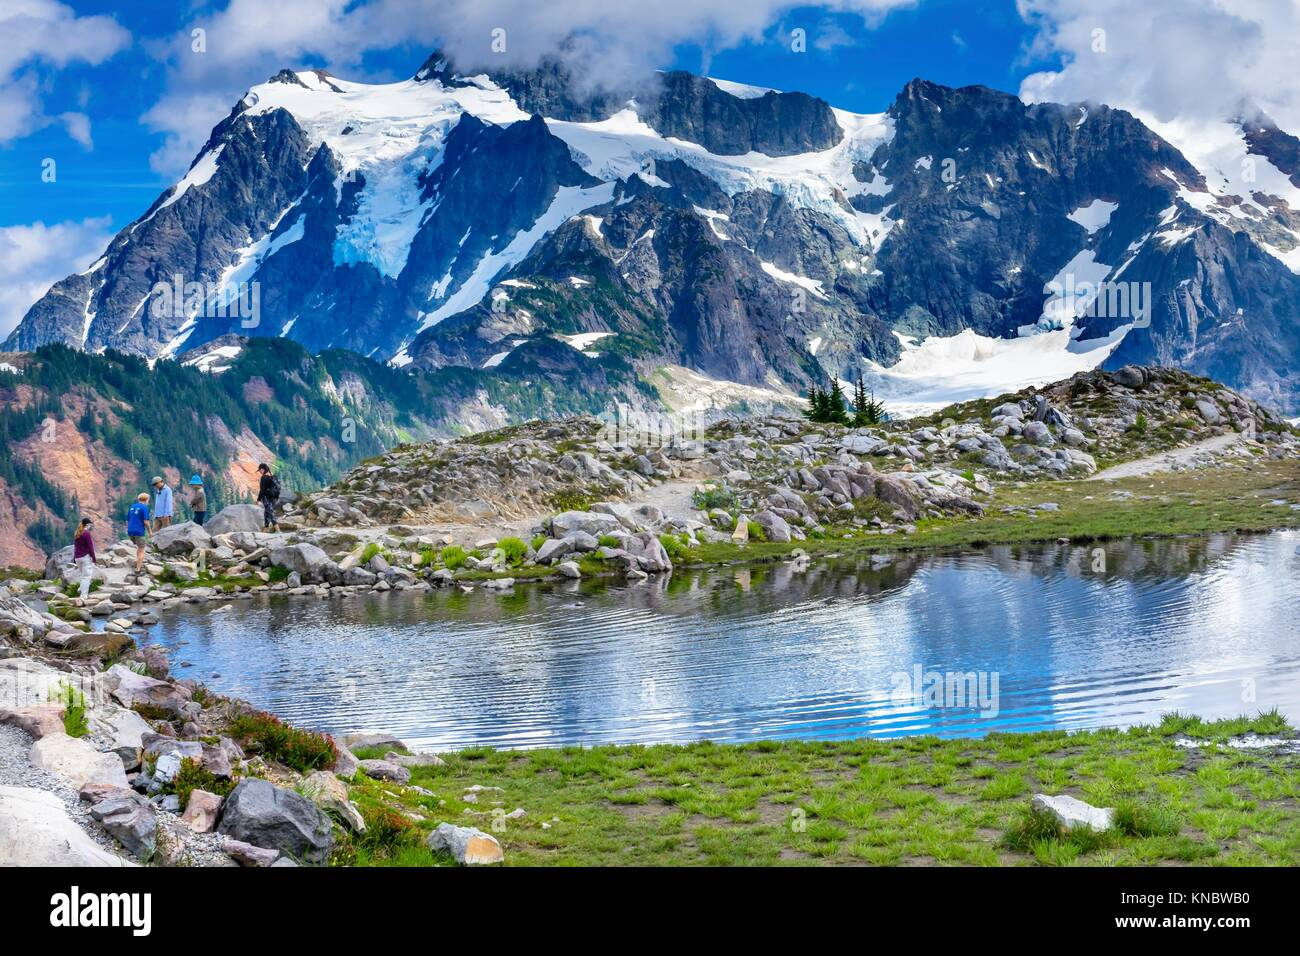 Hikers Mount Shuksan Pool Reflection Summer Artist Point Mount Baker Highway. Pacific Northwest, Washington State, Stock Photo